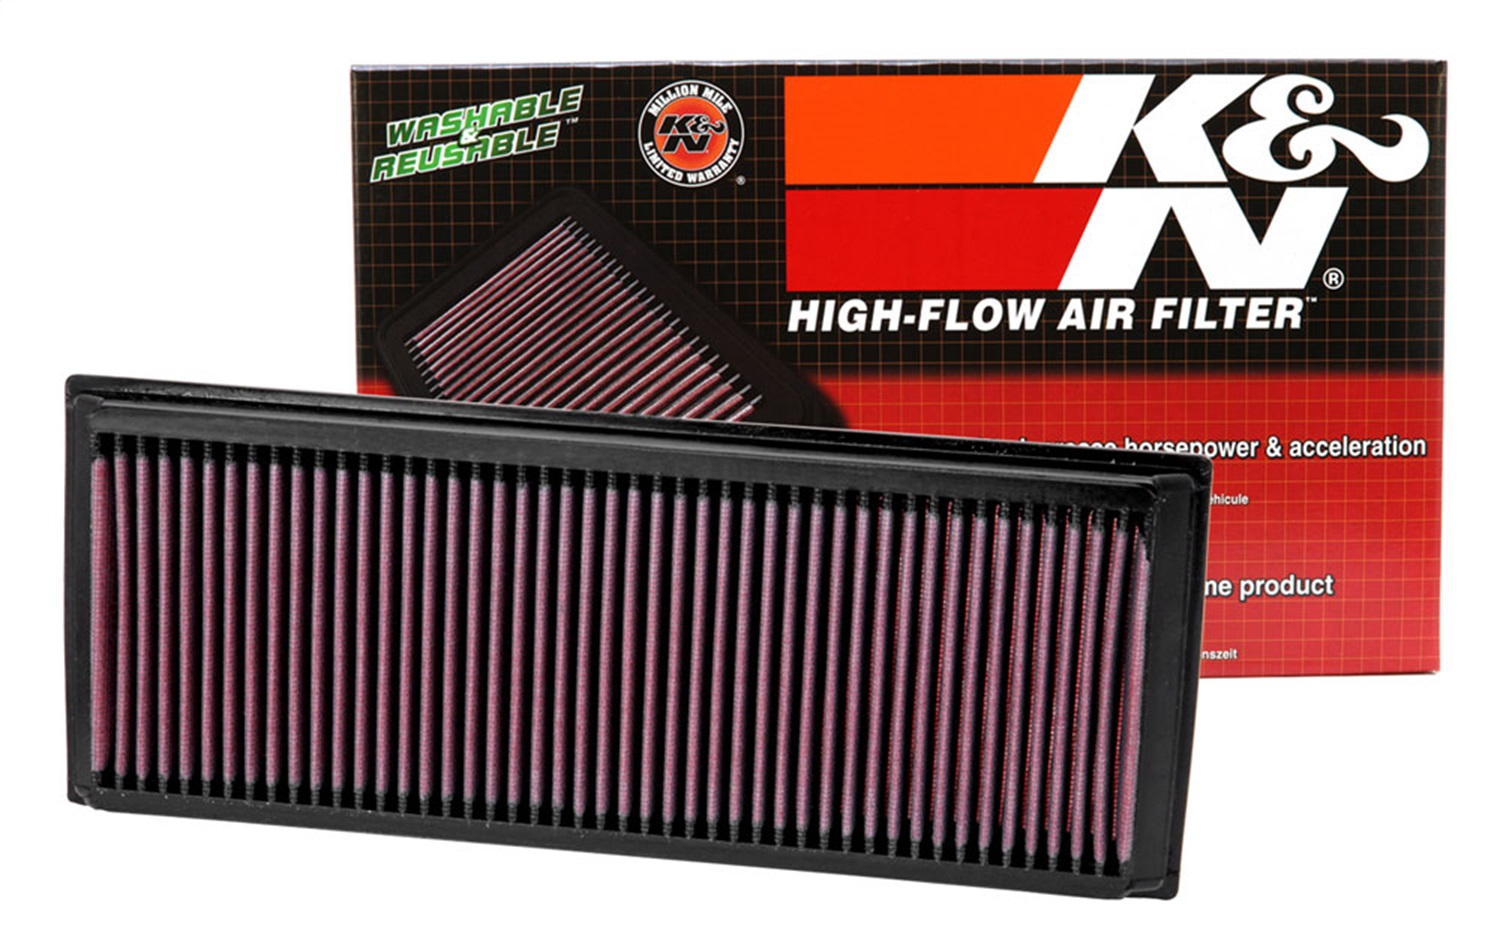 There are a wide range of K&N Air Filter promo codes, offers and deals from different stores. The list gets updated daily, and almost all of them are verified and free to use. Do check back often or bookmark the page for those K&N Air Filter offers: including 9 K&N Air Filter promo codes and 21 deals in December